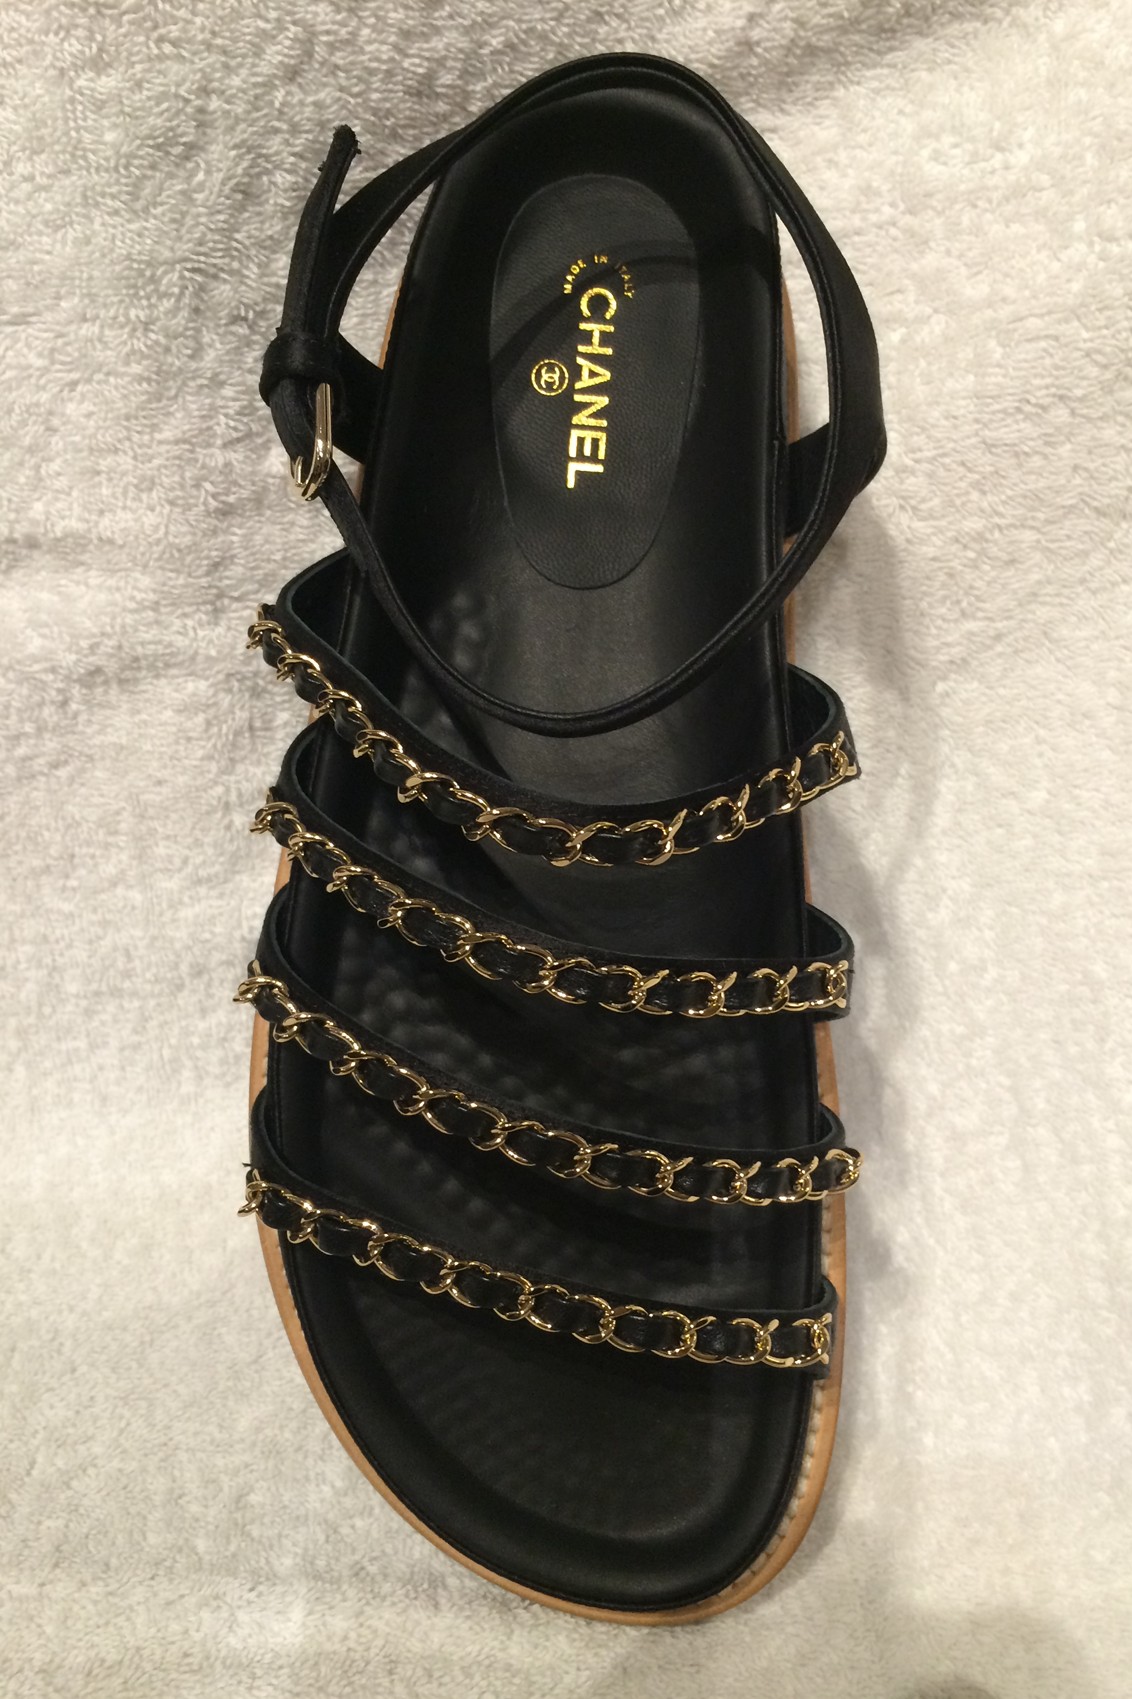 Chanel Satin Strappy Embellished Chain Sandals